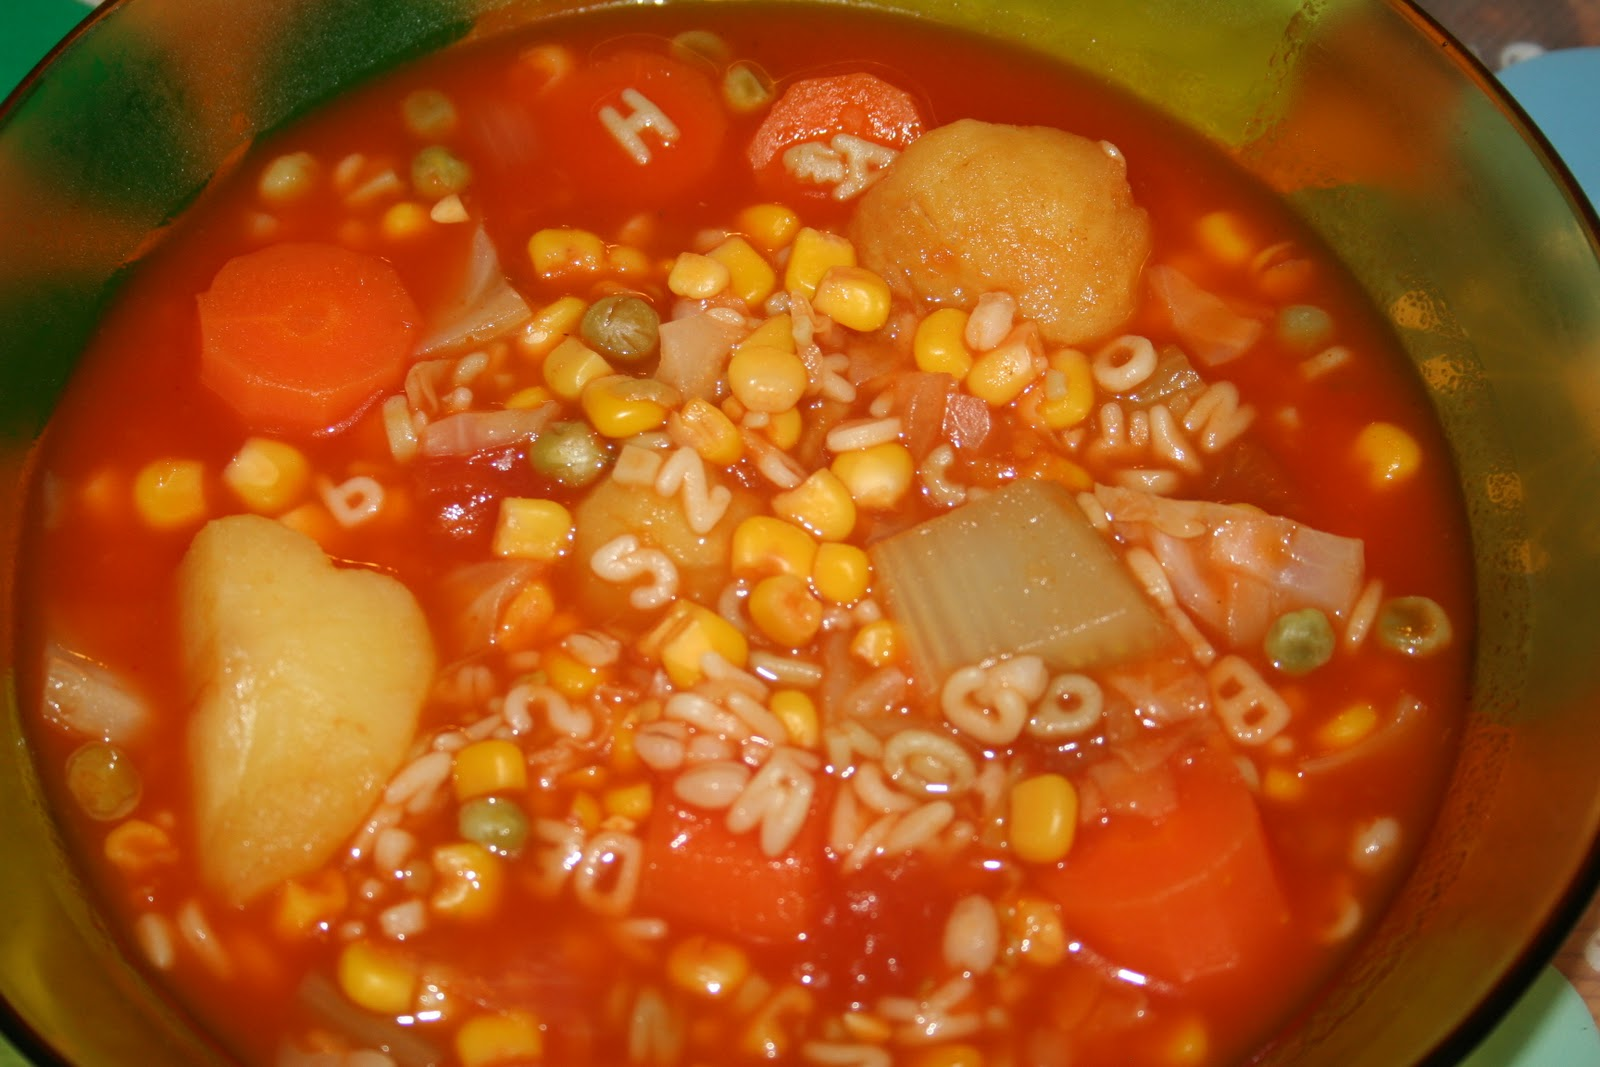 Our Slice of Spice: Homemade Alphabet Soup